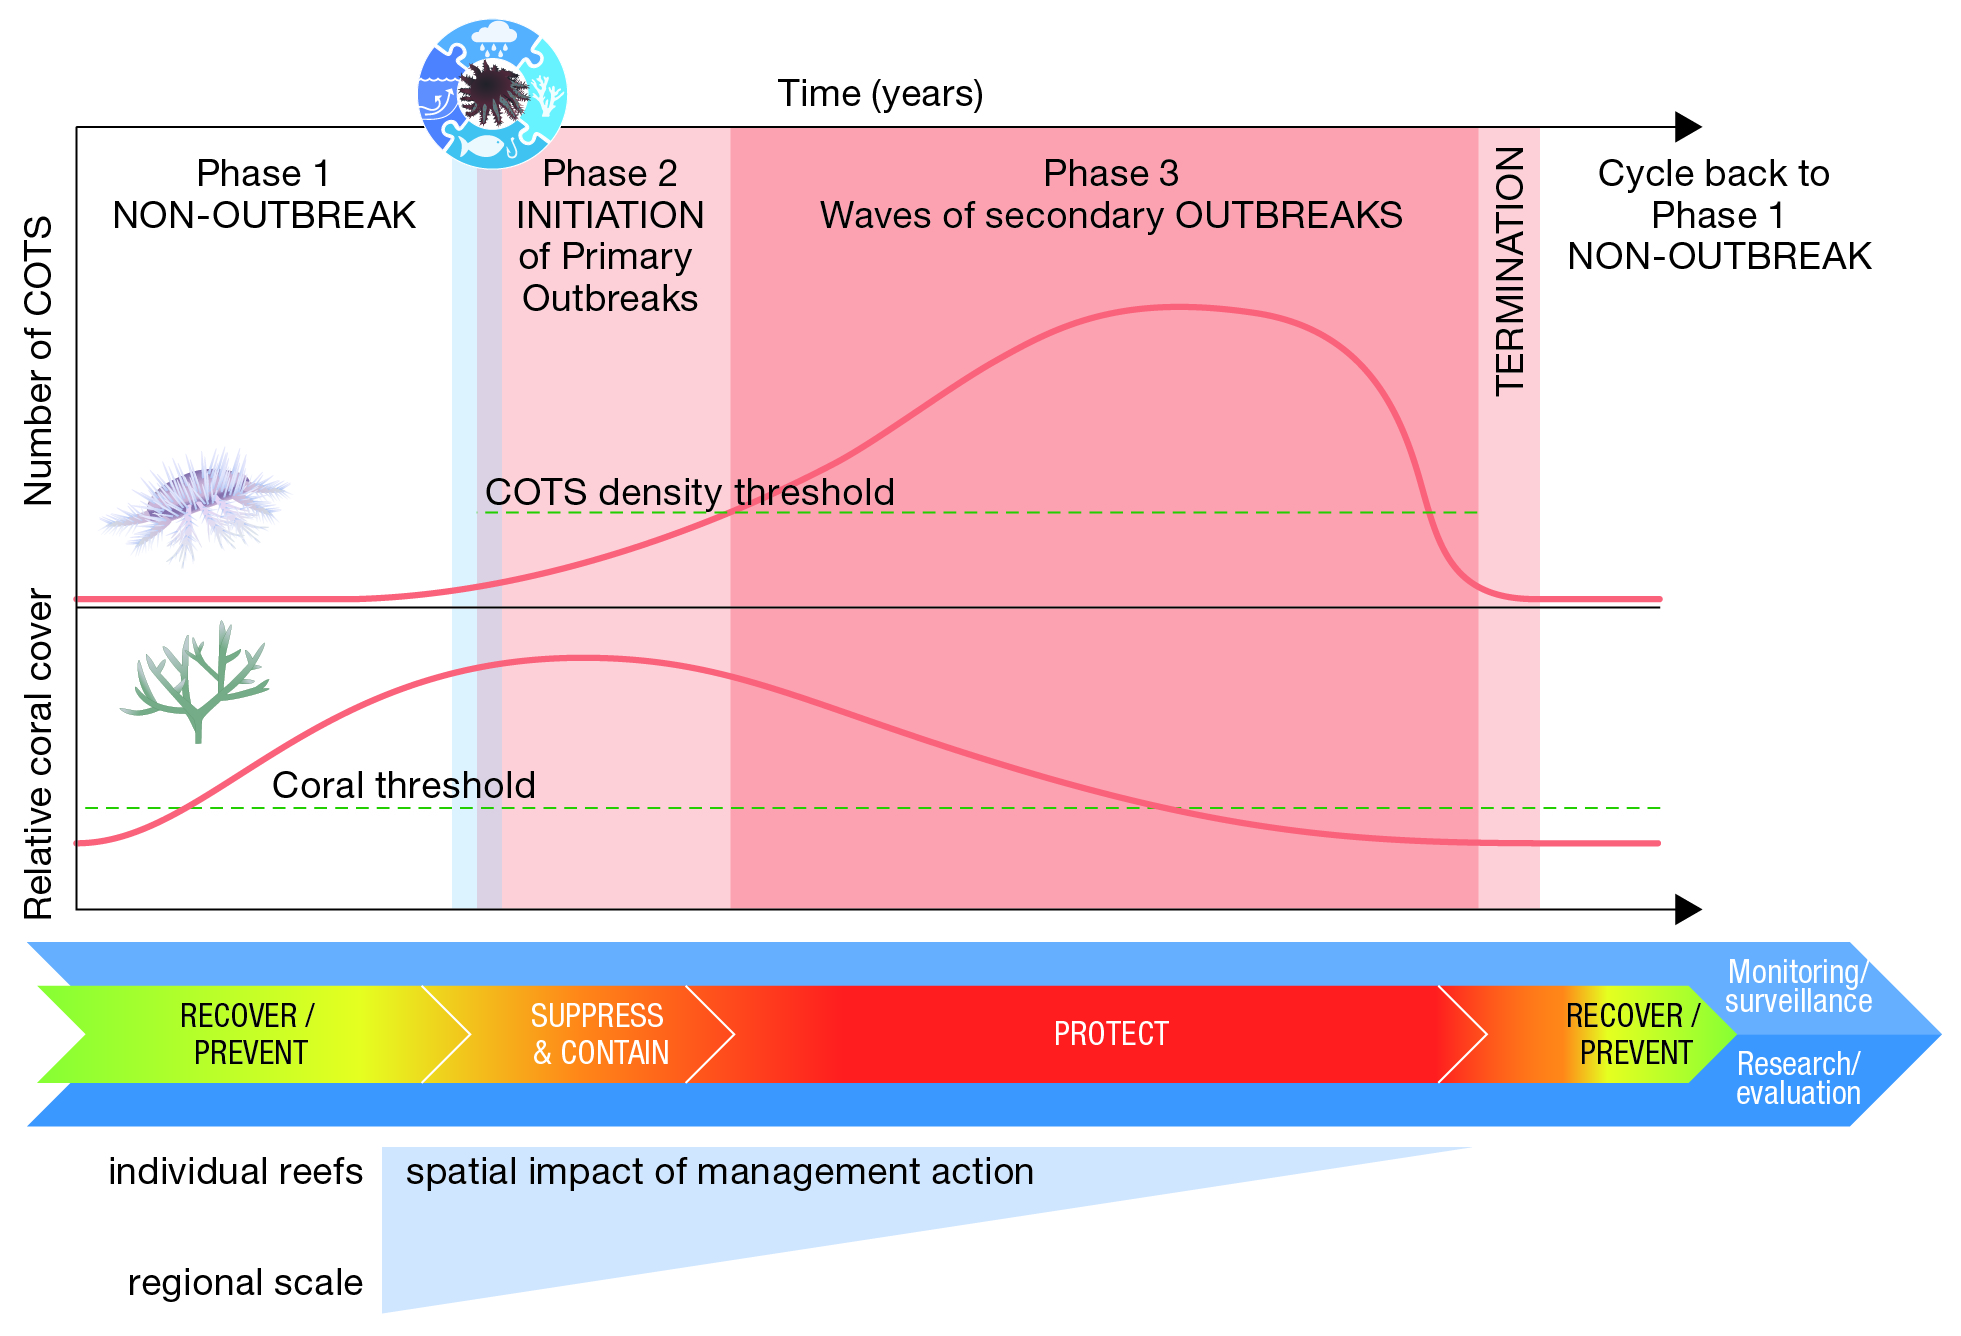 Crown-of-thorns starfish (COTS) outbreak cycle and the associated stages of management action